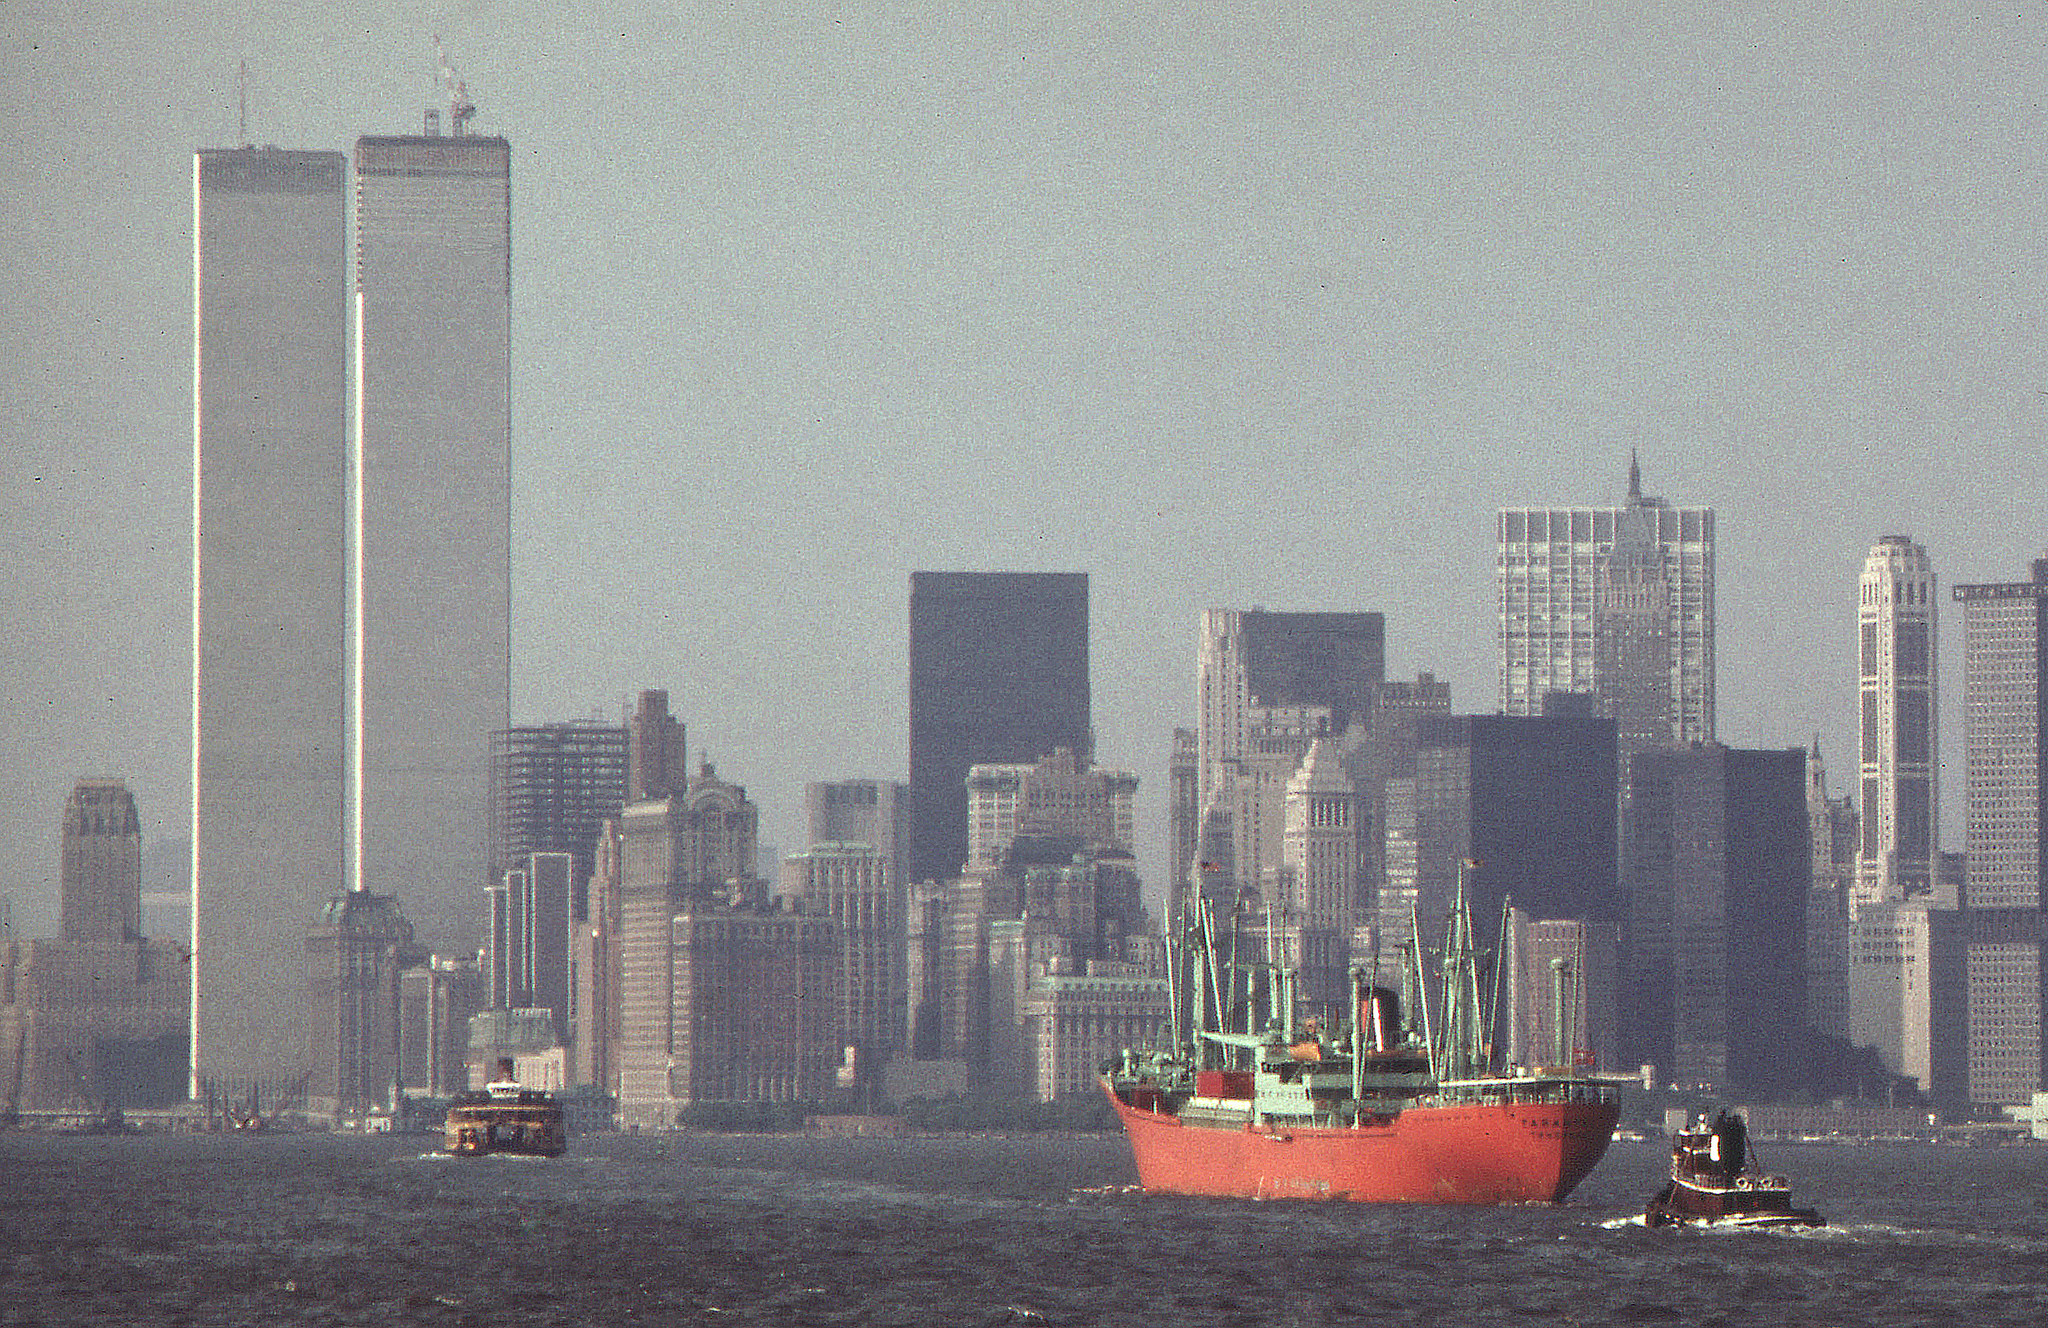 A foggy day on the harbor from the Staten Island Ferry looking toward Lower Manhattan. June 1974